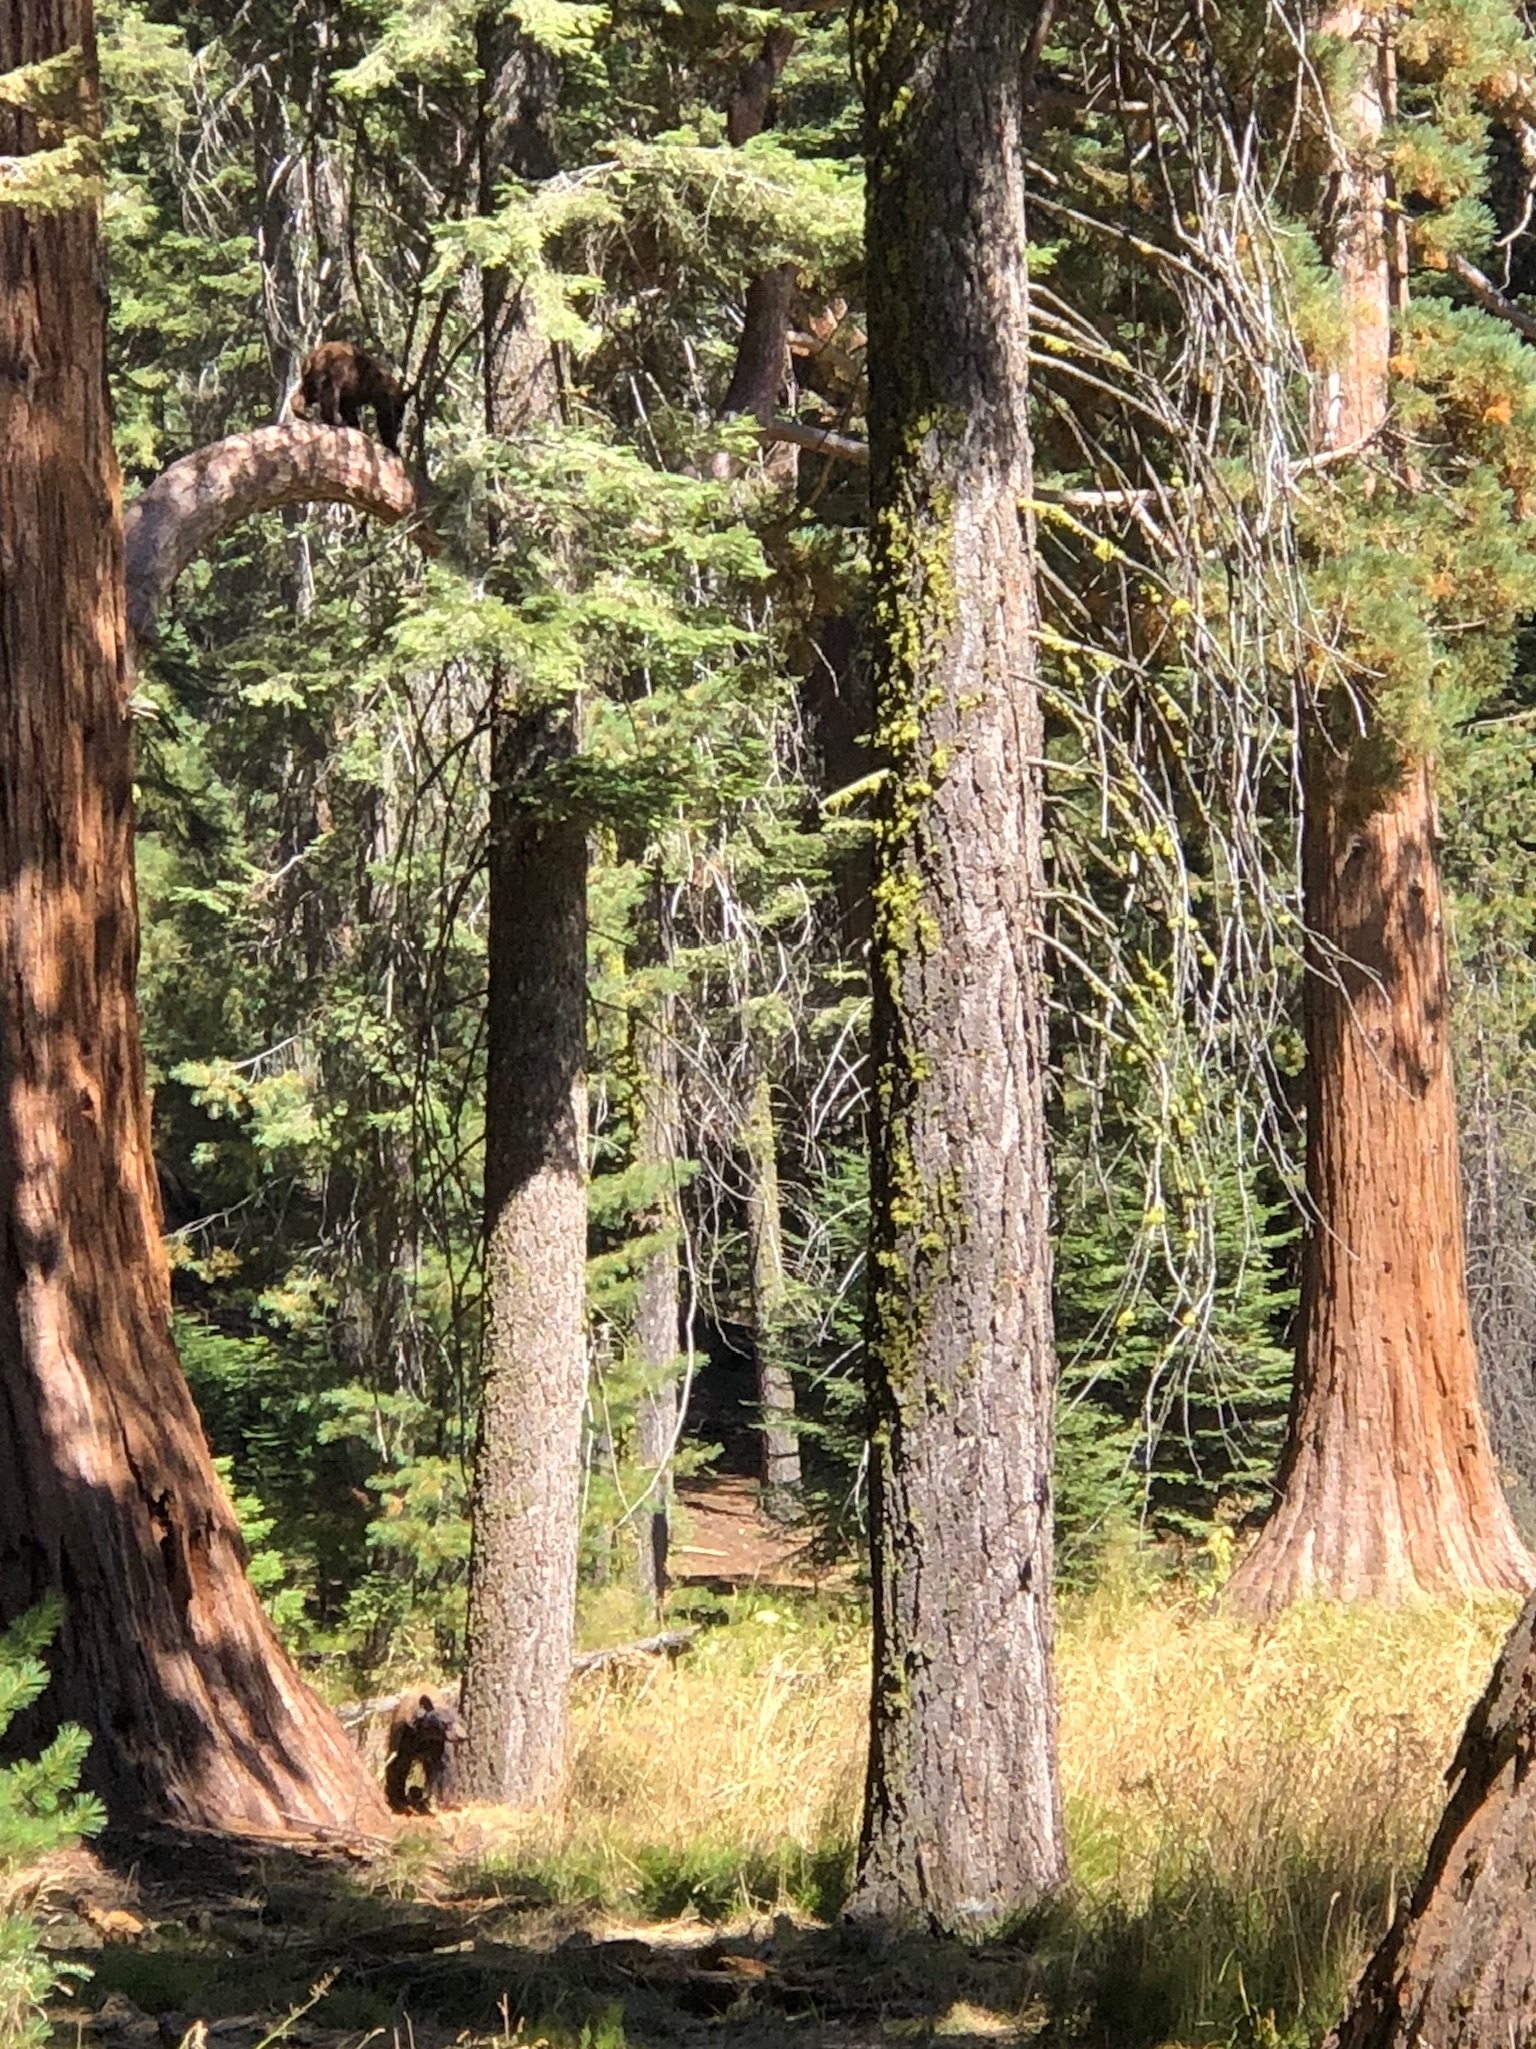 Bears at Sequoia National Park